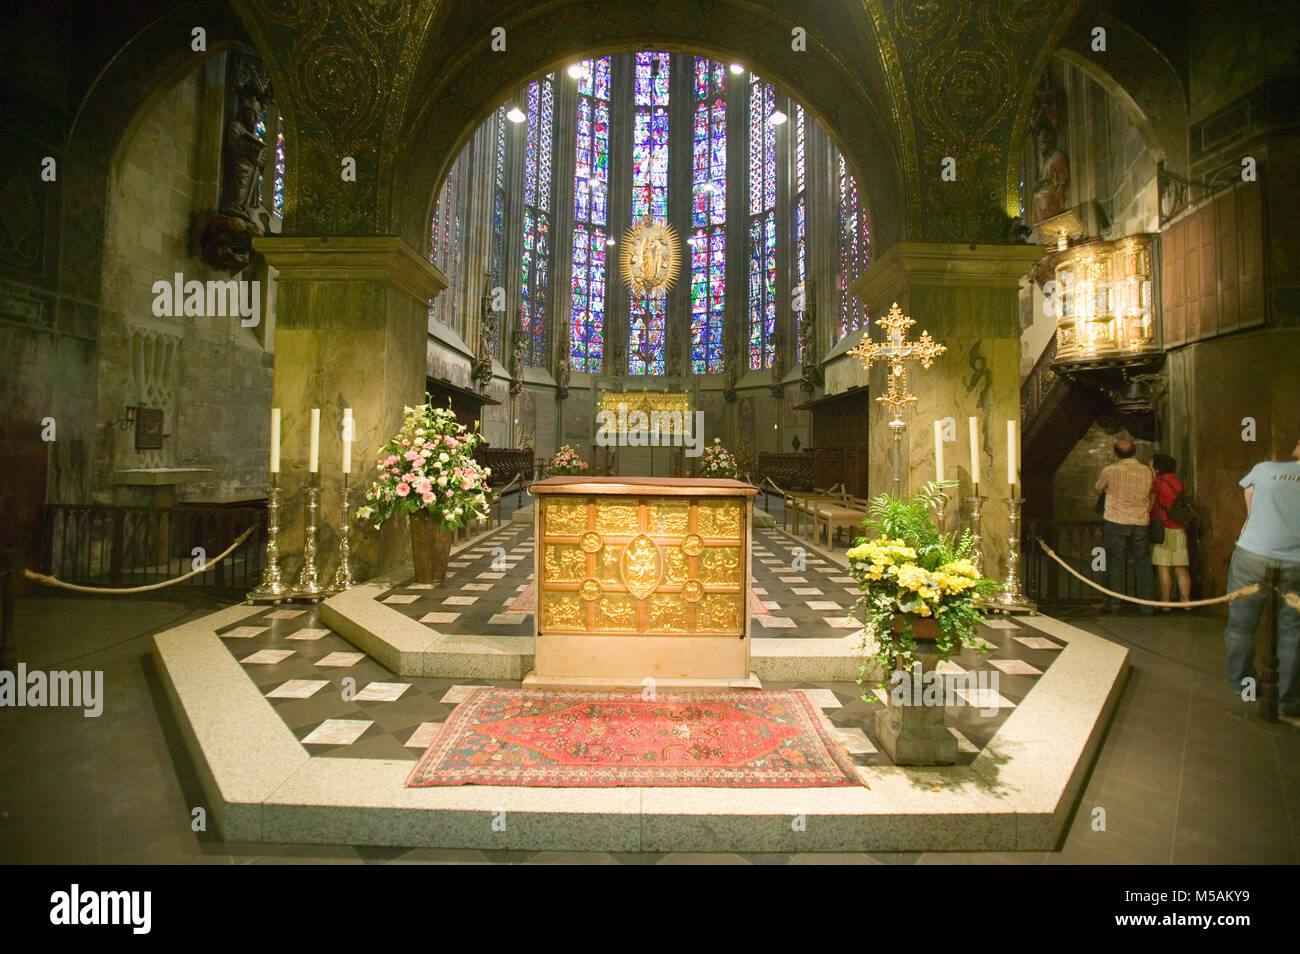 Aachen Cathedral, Aachen or Aix-la-Chapelle, North Rhine-Westphalia, Germany - Stock Image